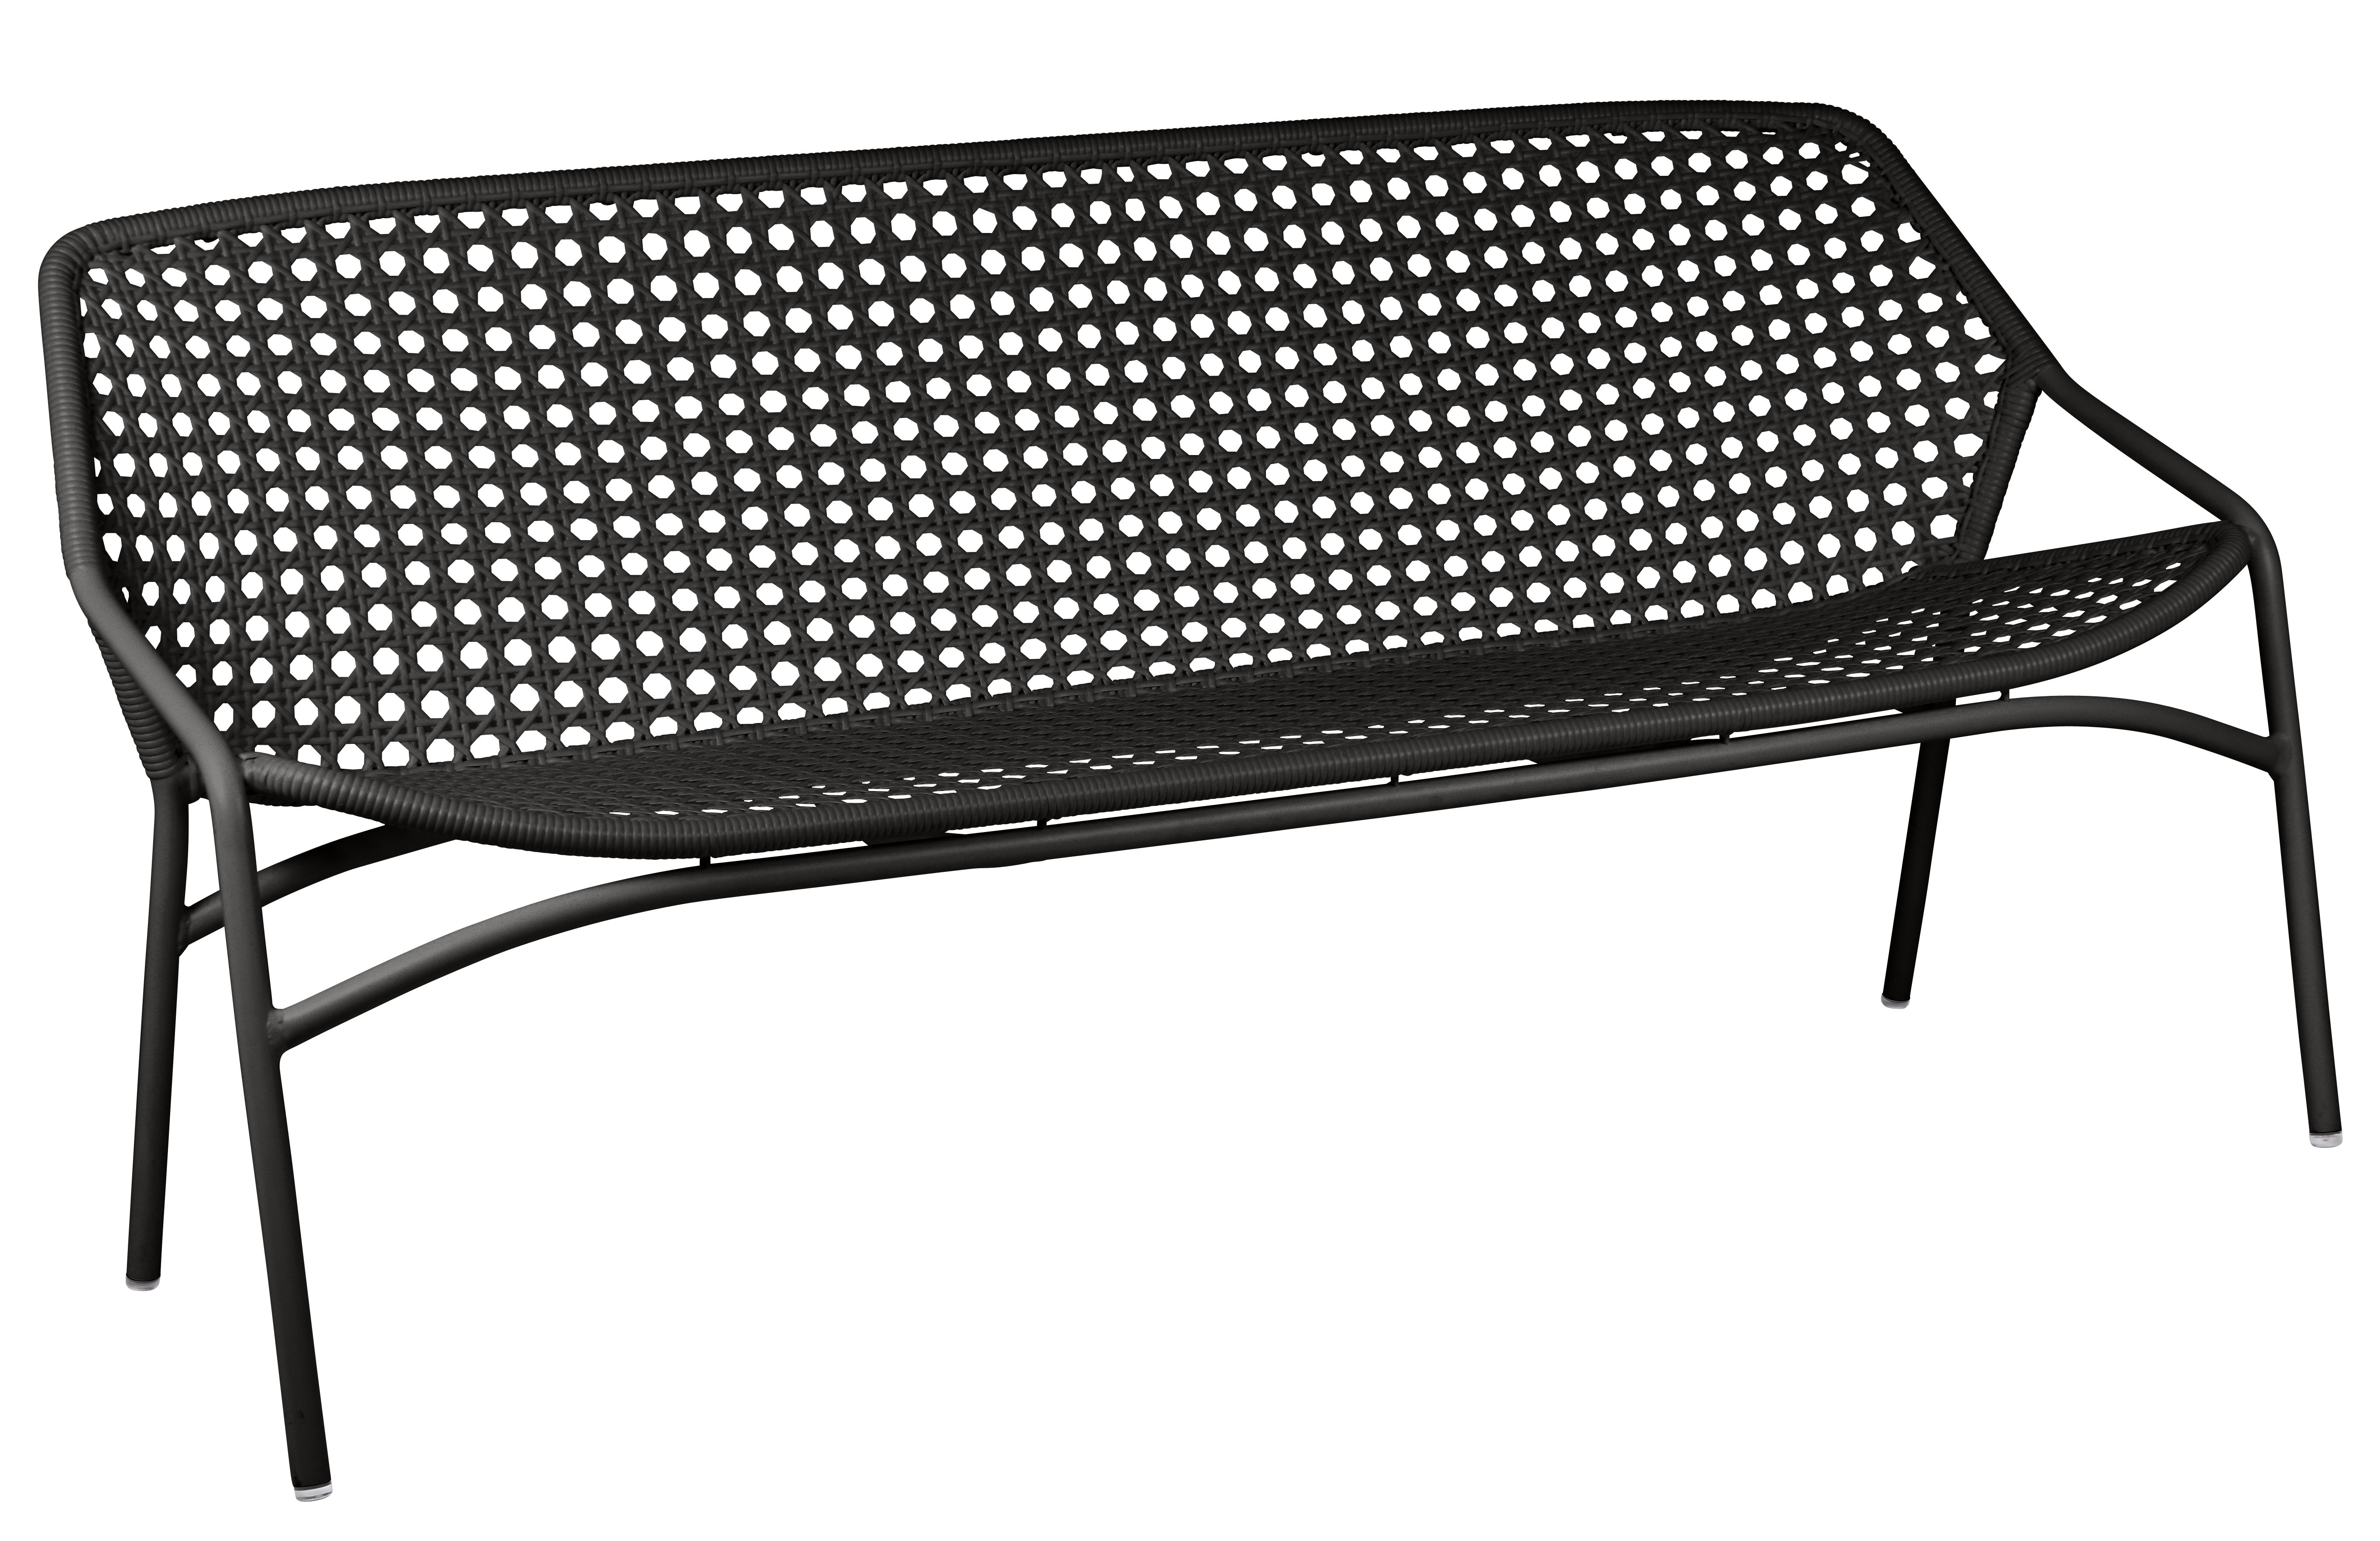 Outdoor - Sofas - Croisette XL Bench - 3 seats / L 177 cm - Woven plastic by Fermob - Licorice - Aluminium, Synthetic fibres